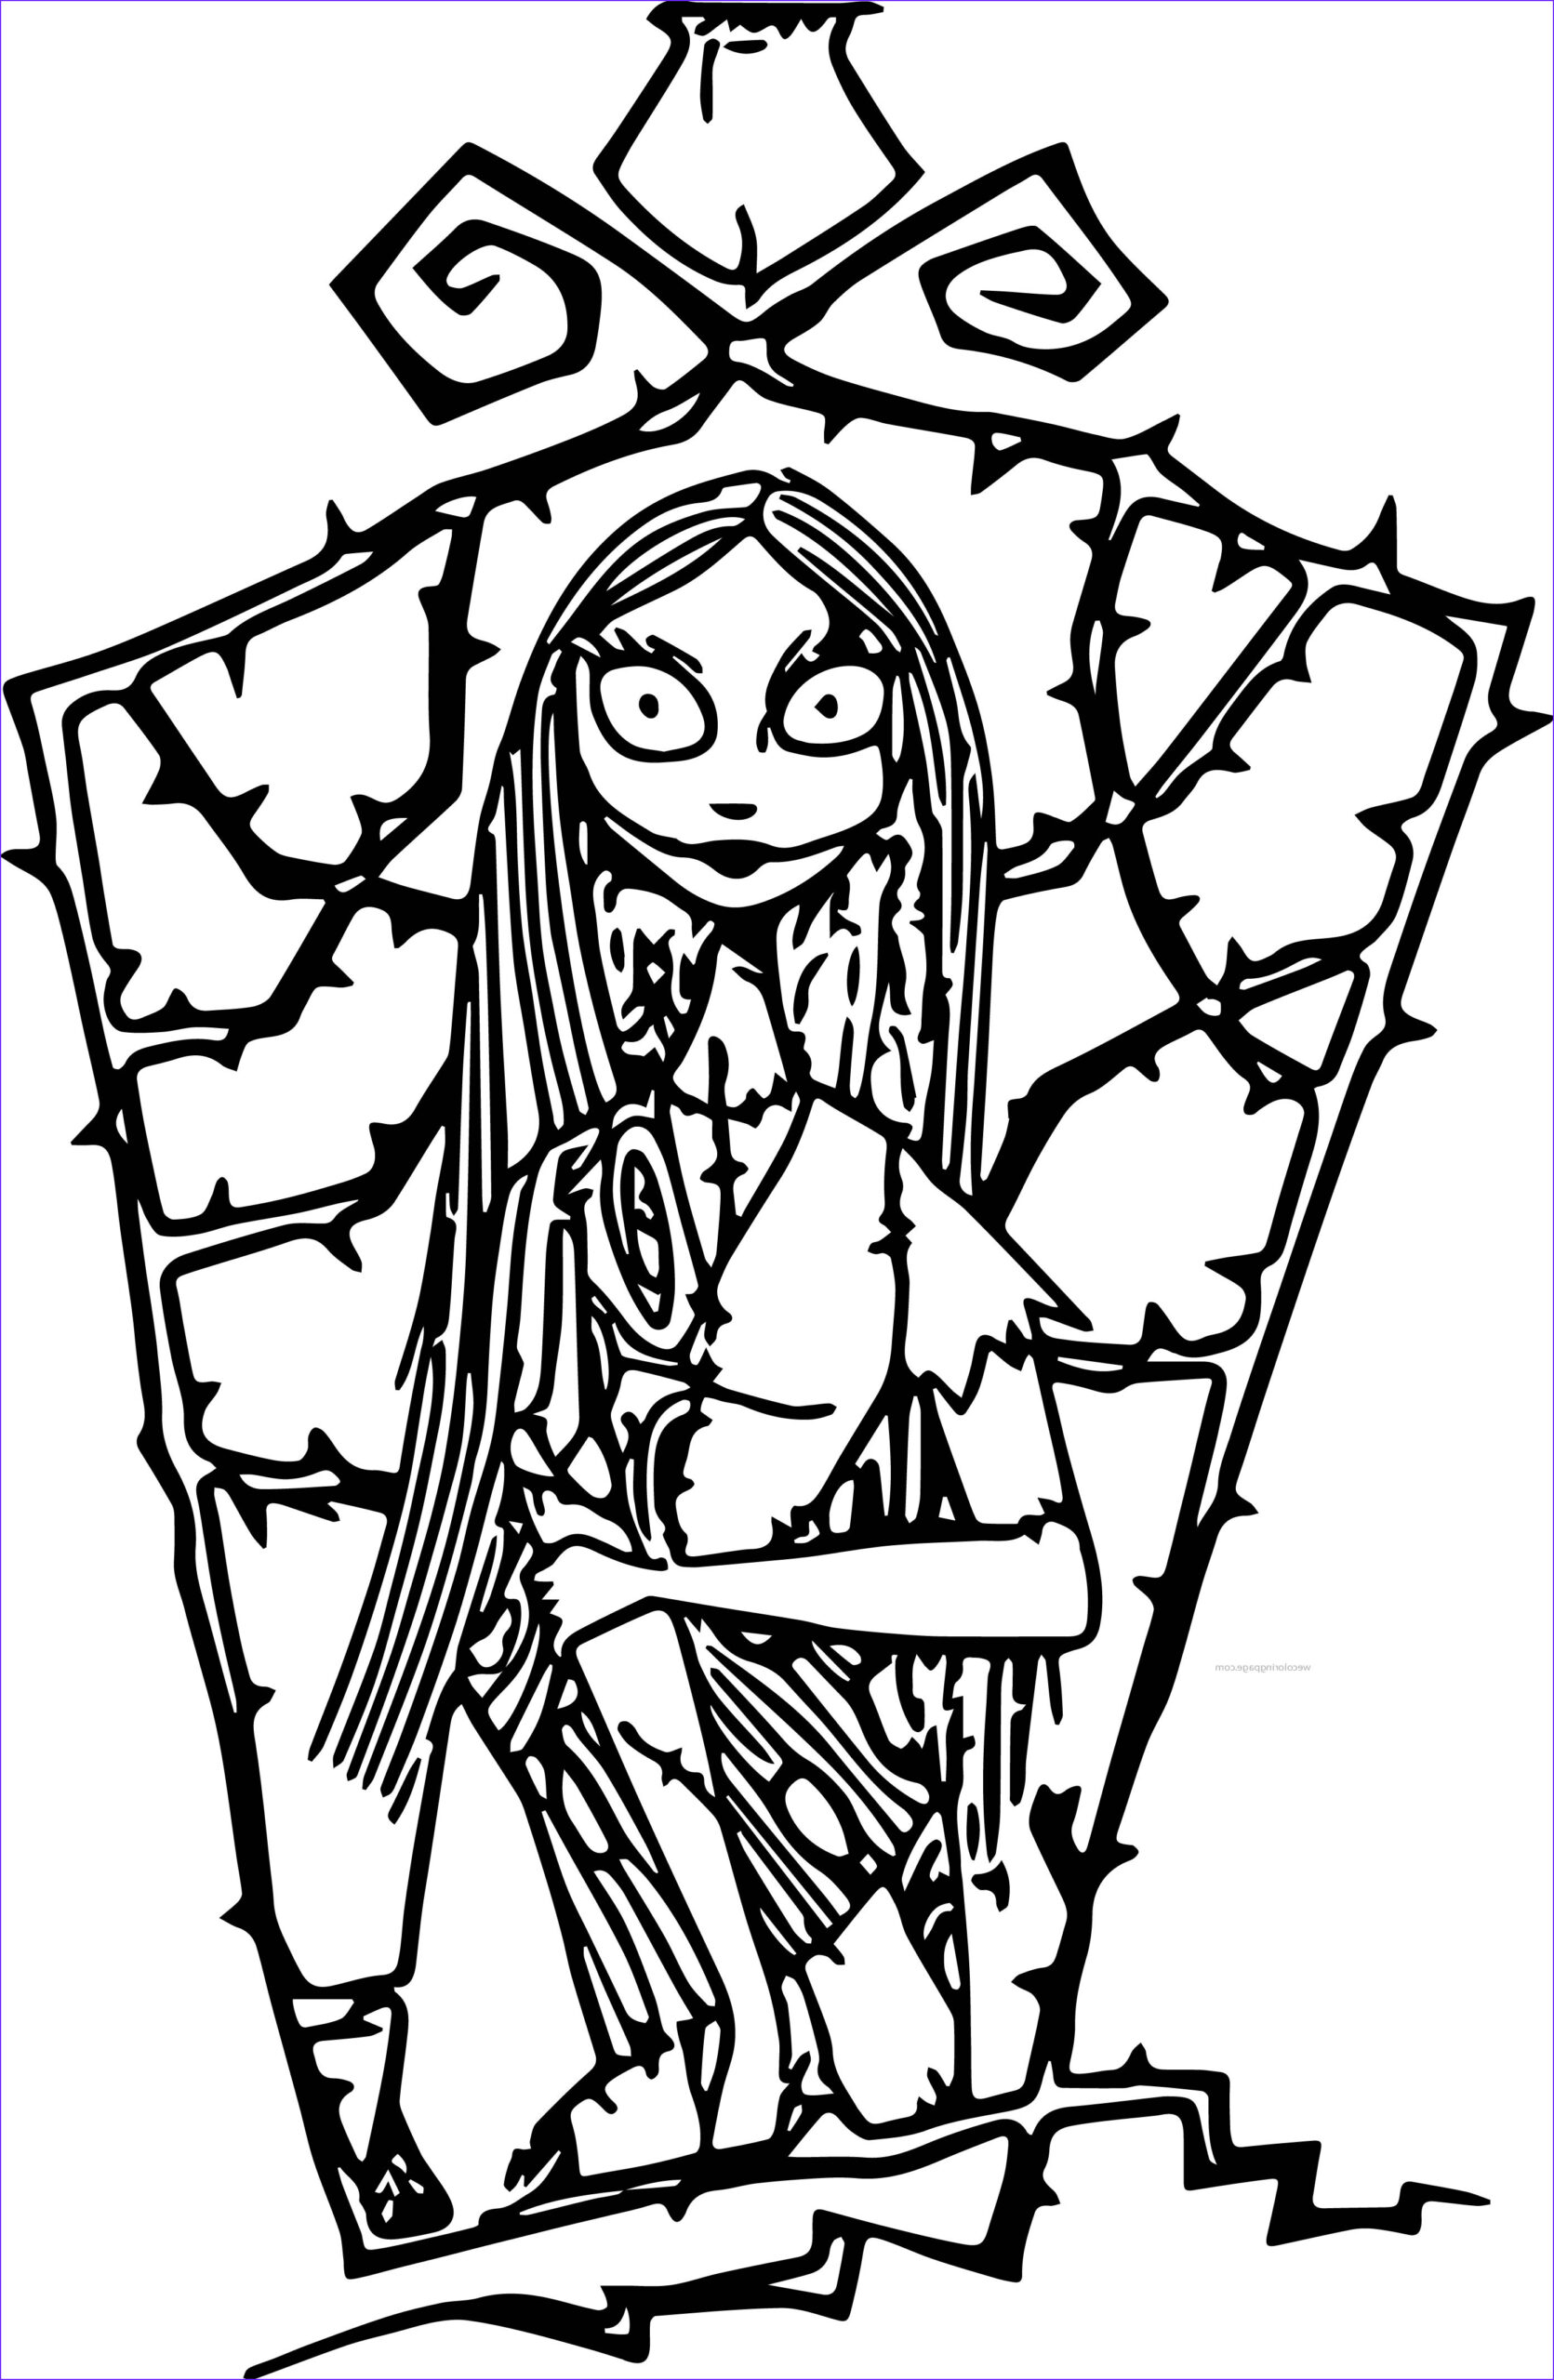 Nightmare before Christmas Coloring Book Cool Collection Free Printable Nightmare before Christmas Coloring Pages